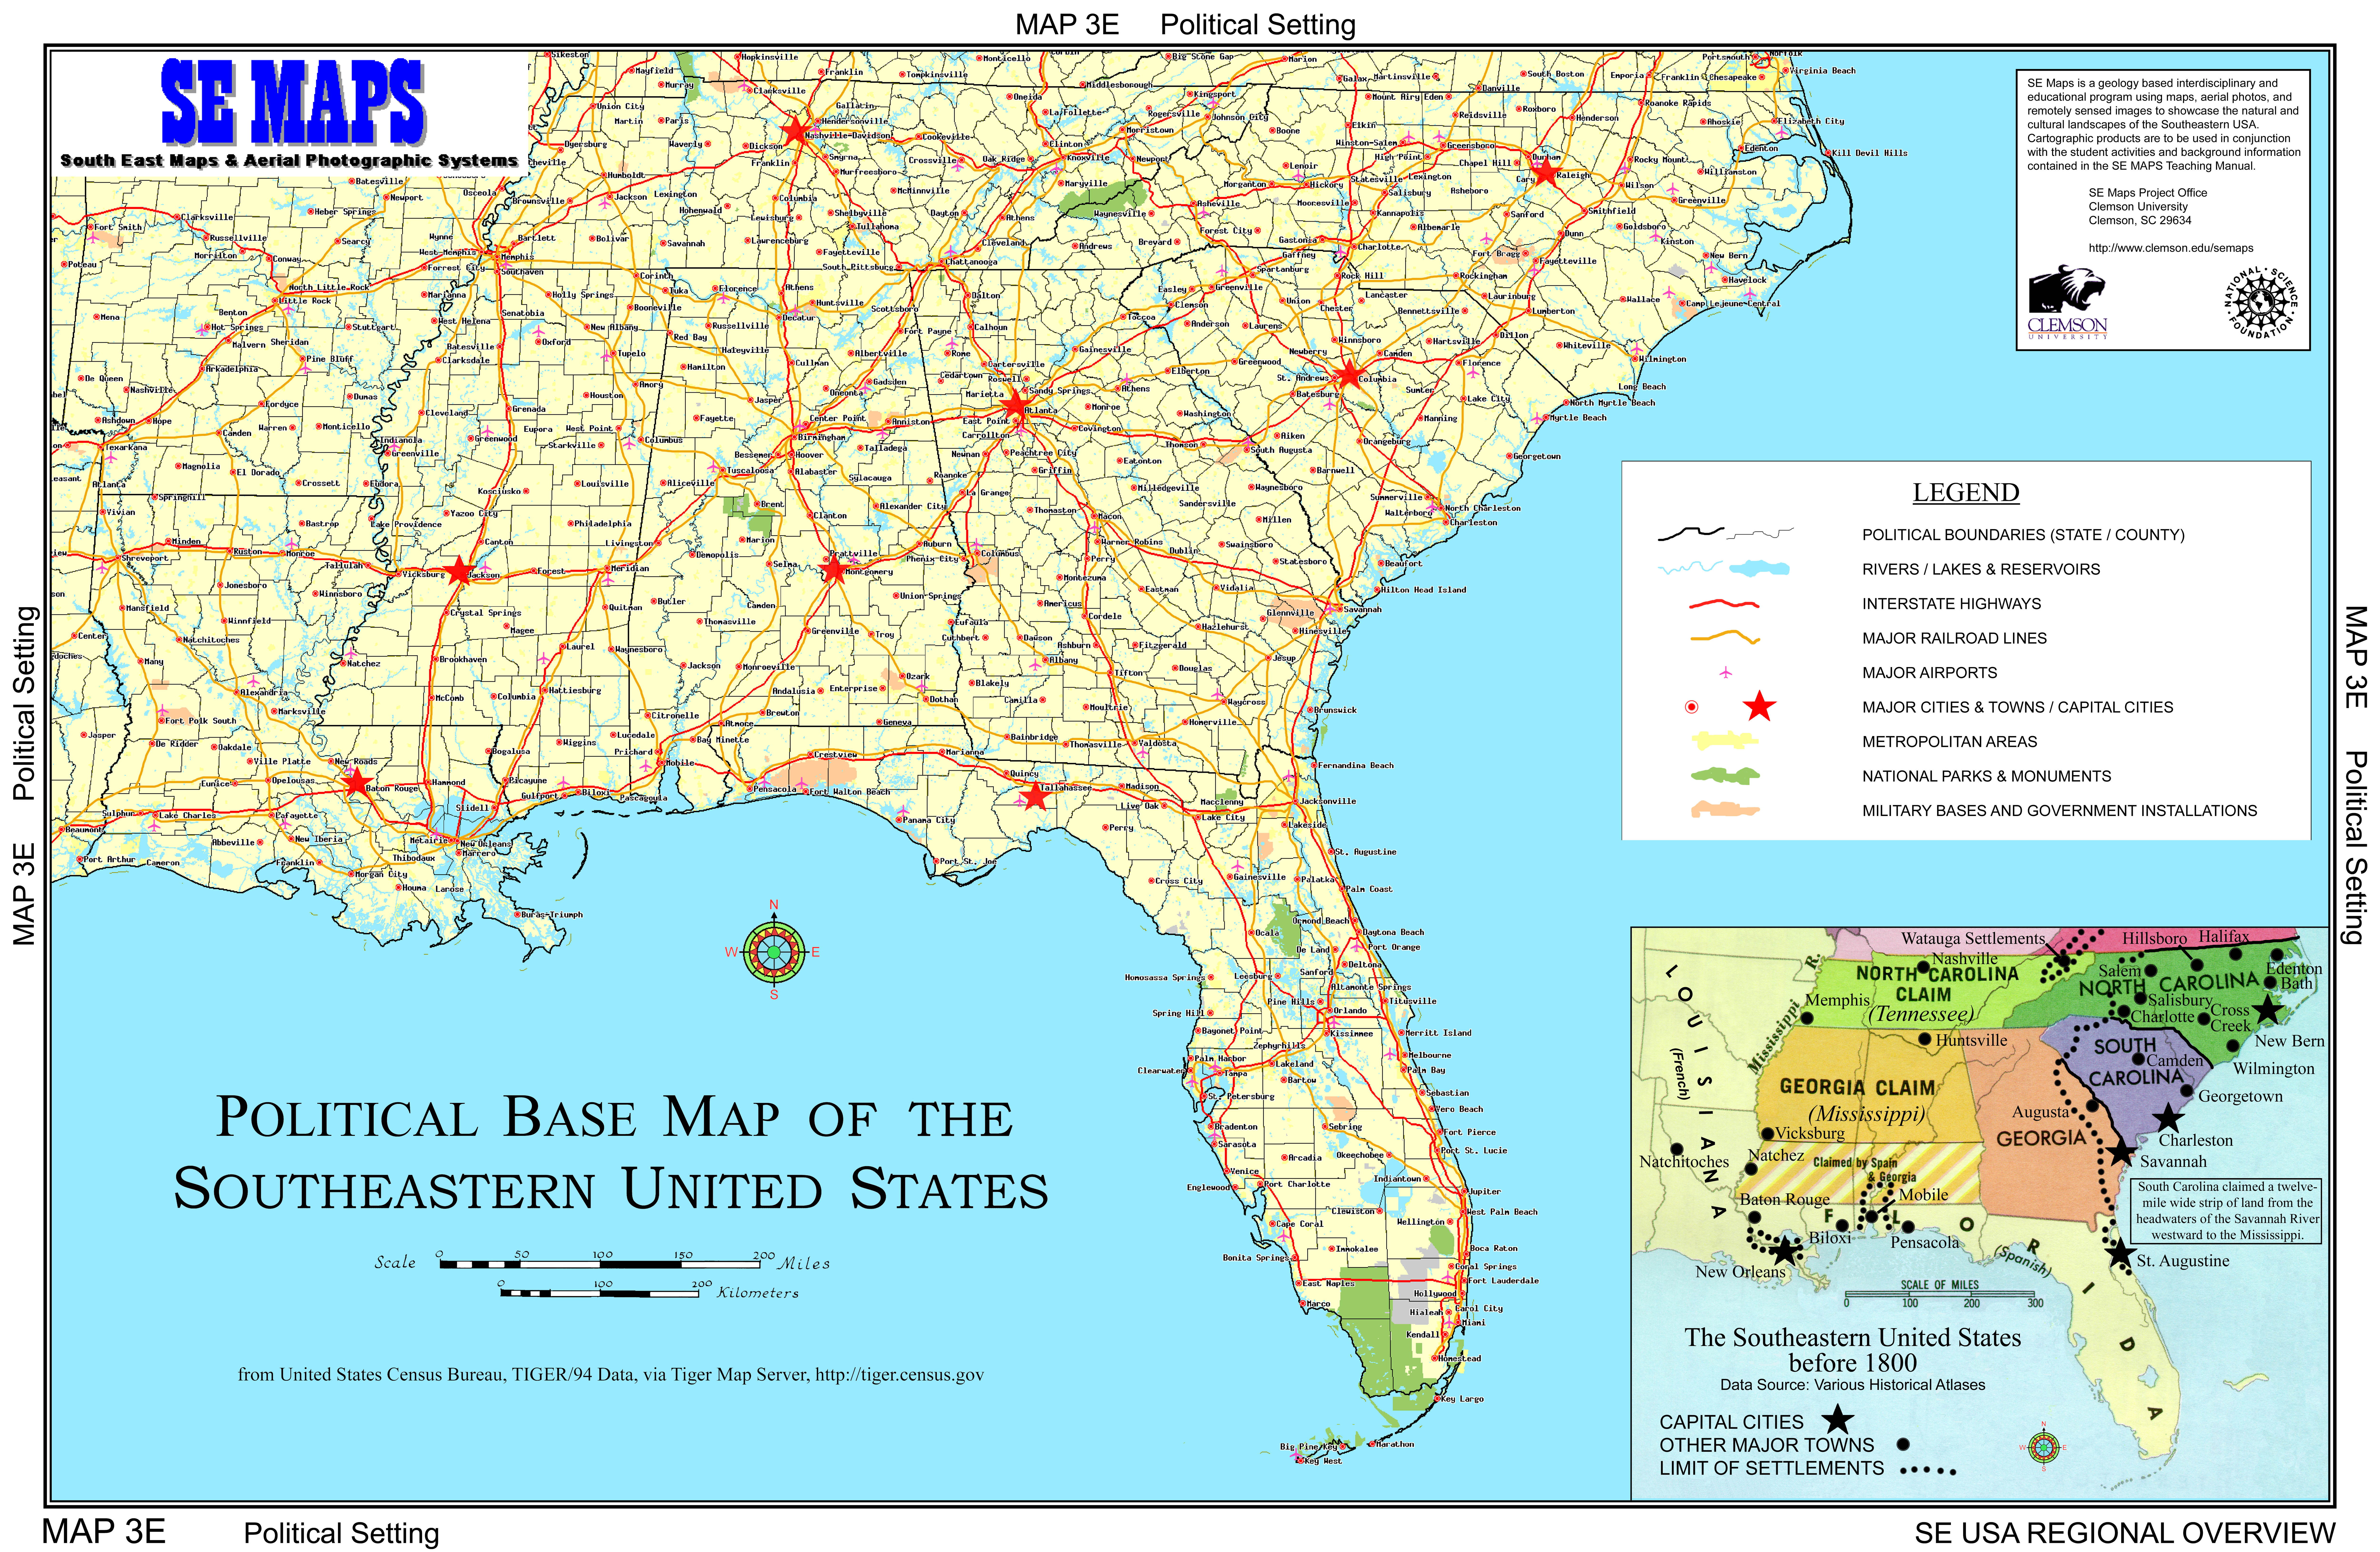 Southeast USA Wall Map Mapscom Map S E Usa Google Images Download - Us rail map google